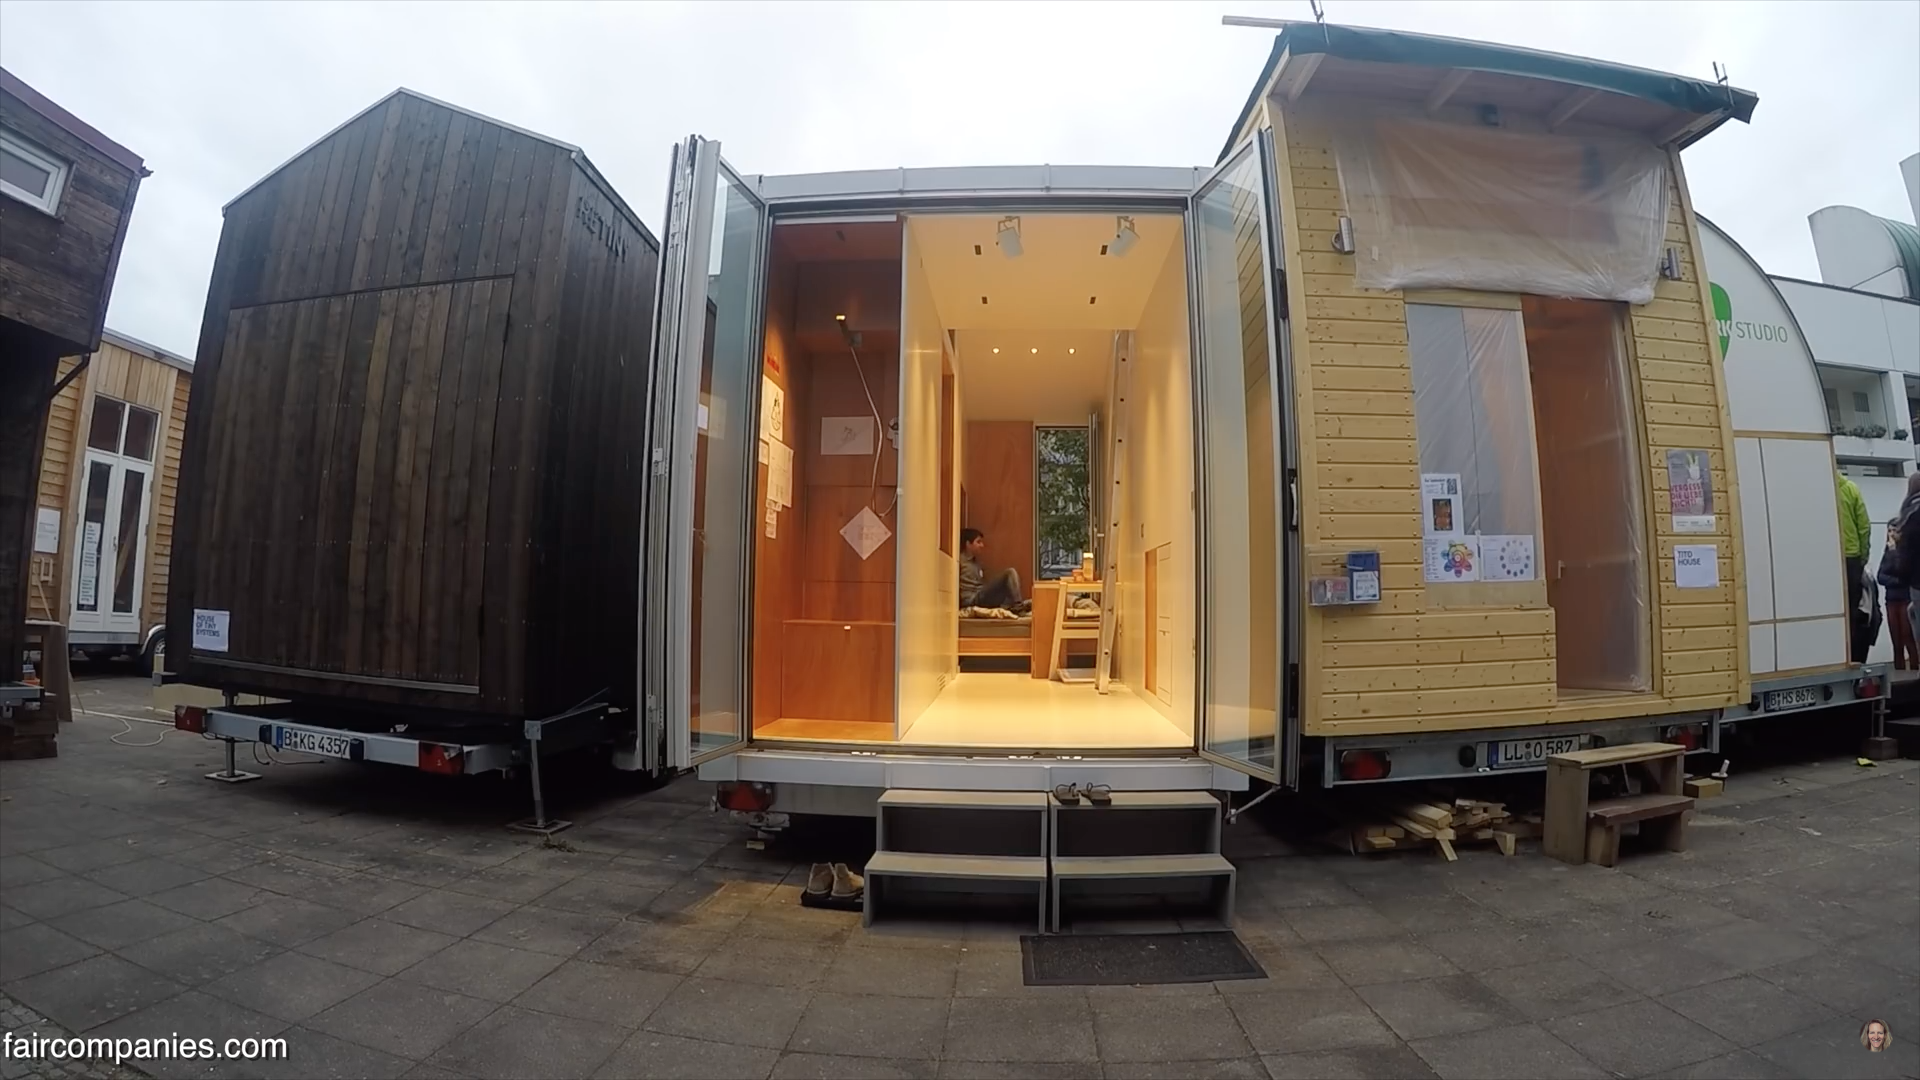 Incredible Transforming Tiny House – Nicknamed aVOID